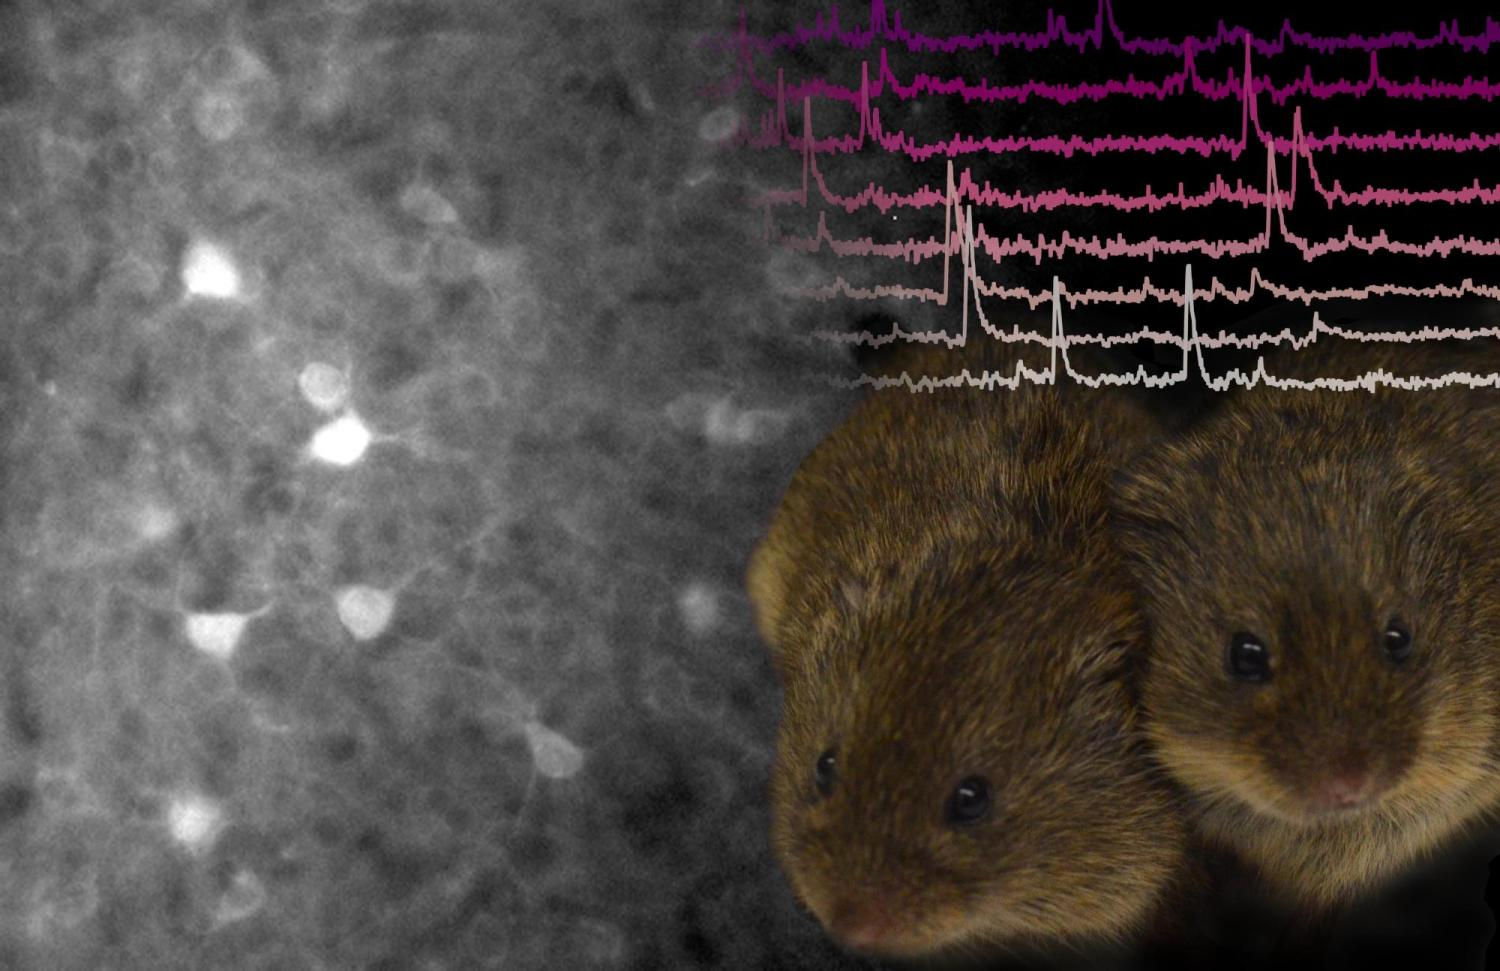 two voles next to an image of their brain activity